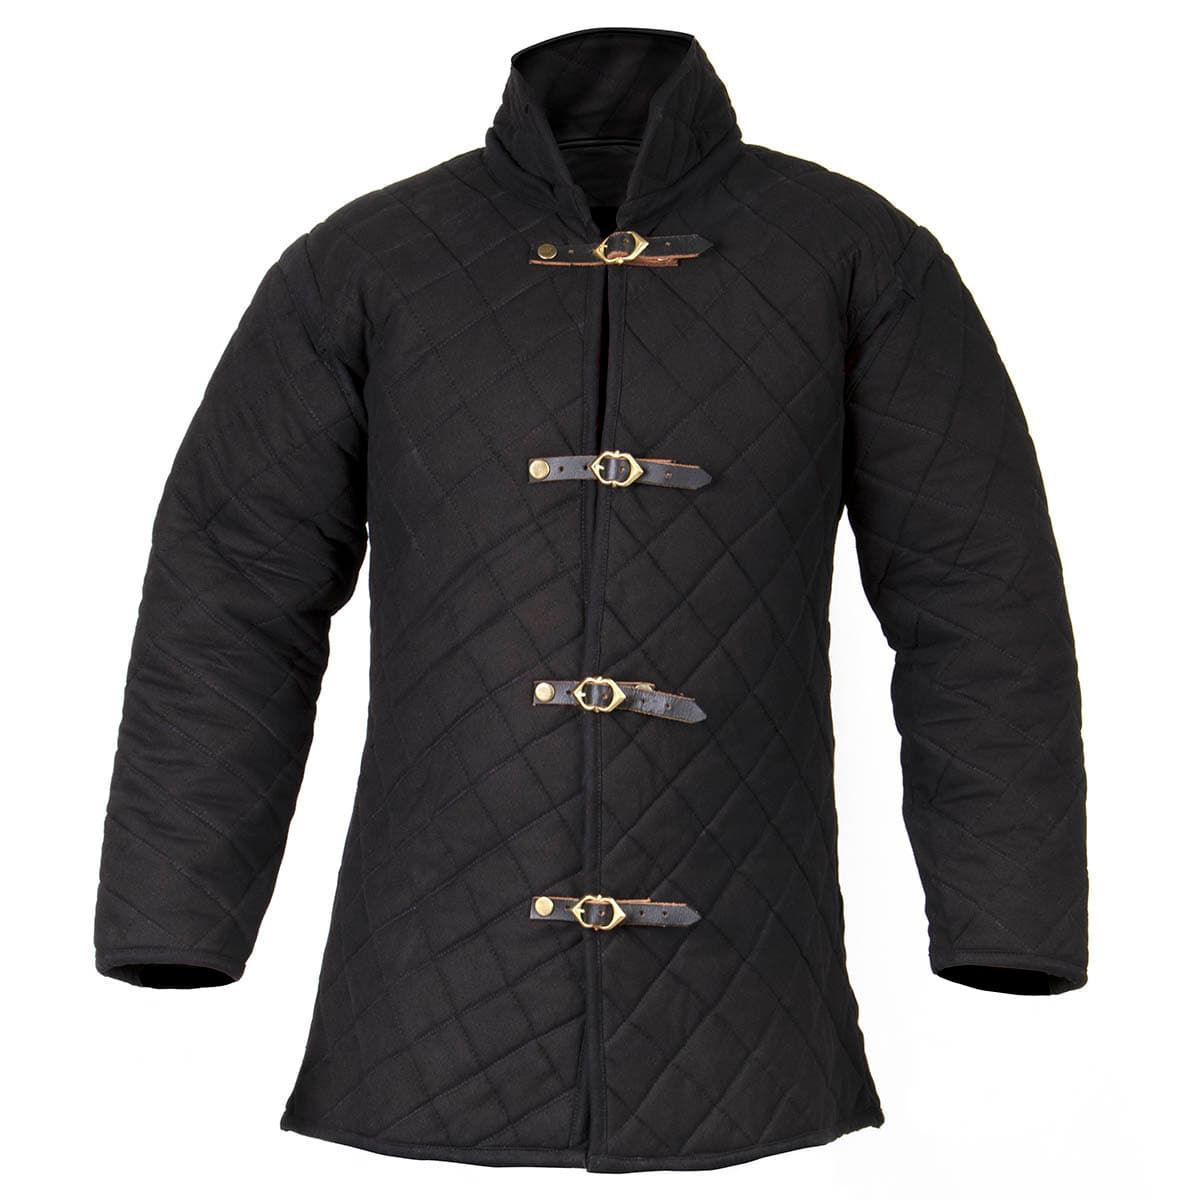 Long Sleeved Front Buckle Padded Gambeson is heavy duty, canvas grade cotton with open armpits and a high neck for protection